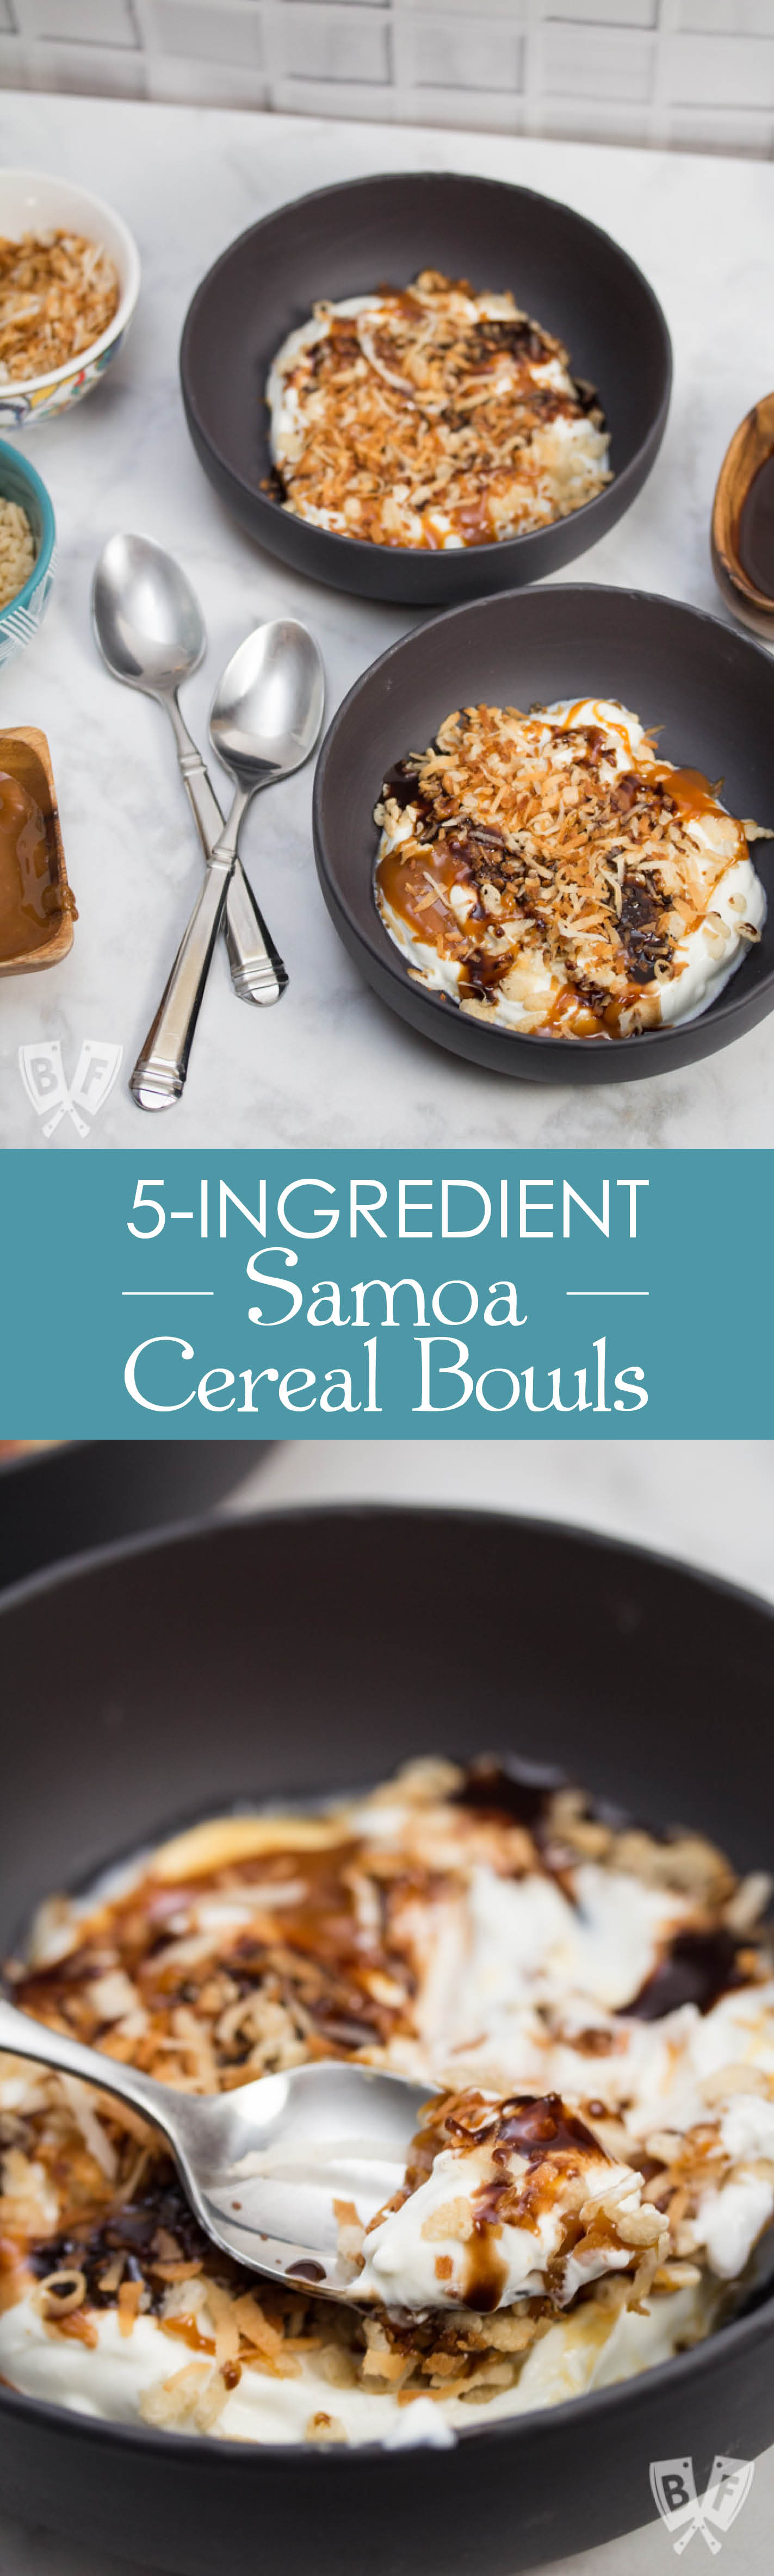 5-Ingredient Samoa Cereal Bowls: This quick & easy 5-ingredient Greek yogurt cereal bowl features toasted coconut + Rice Krispies - an ode to my favorite Girl Scout cookie, the Samoa! #ReimagineYourCereal #CollectiveBias #ad